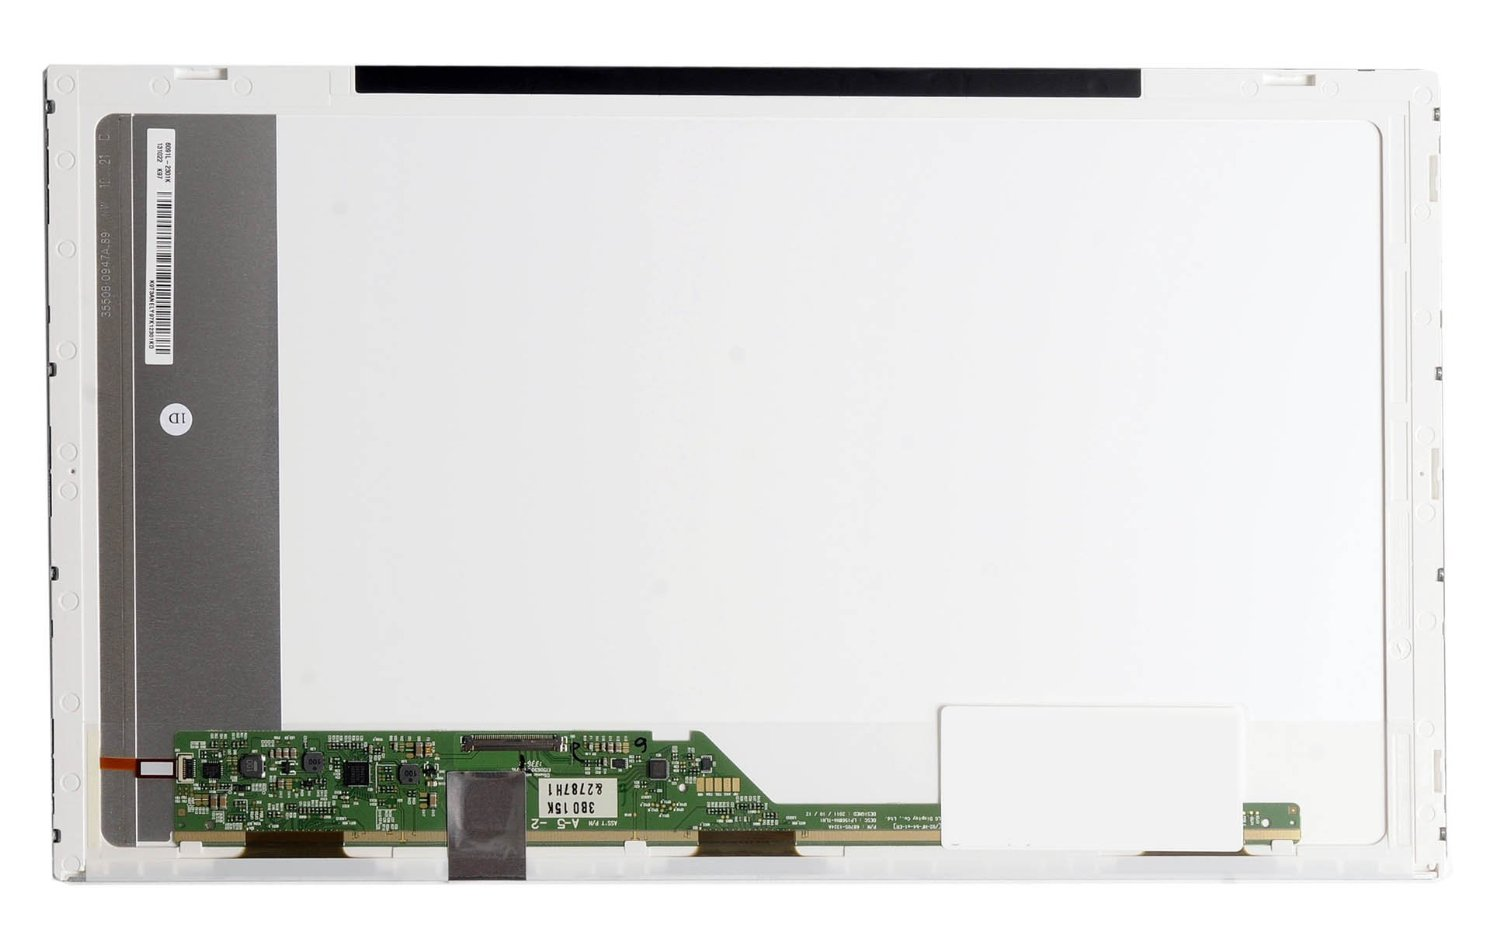 For HP G62-228NR, G62-229NR, G62-229WM, G62-231NR, G62-234DX LAPTOP LCD REPLACEMENT SCREEN 15.6 WXGA HD LED original a1706 a1708 lcd back cover for macbook pro13 2016 a1706 a1708 laptop replacement